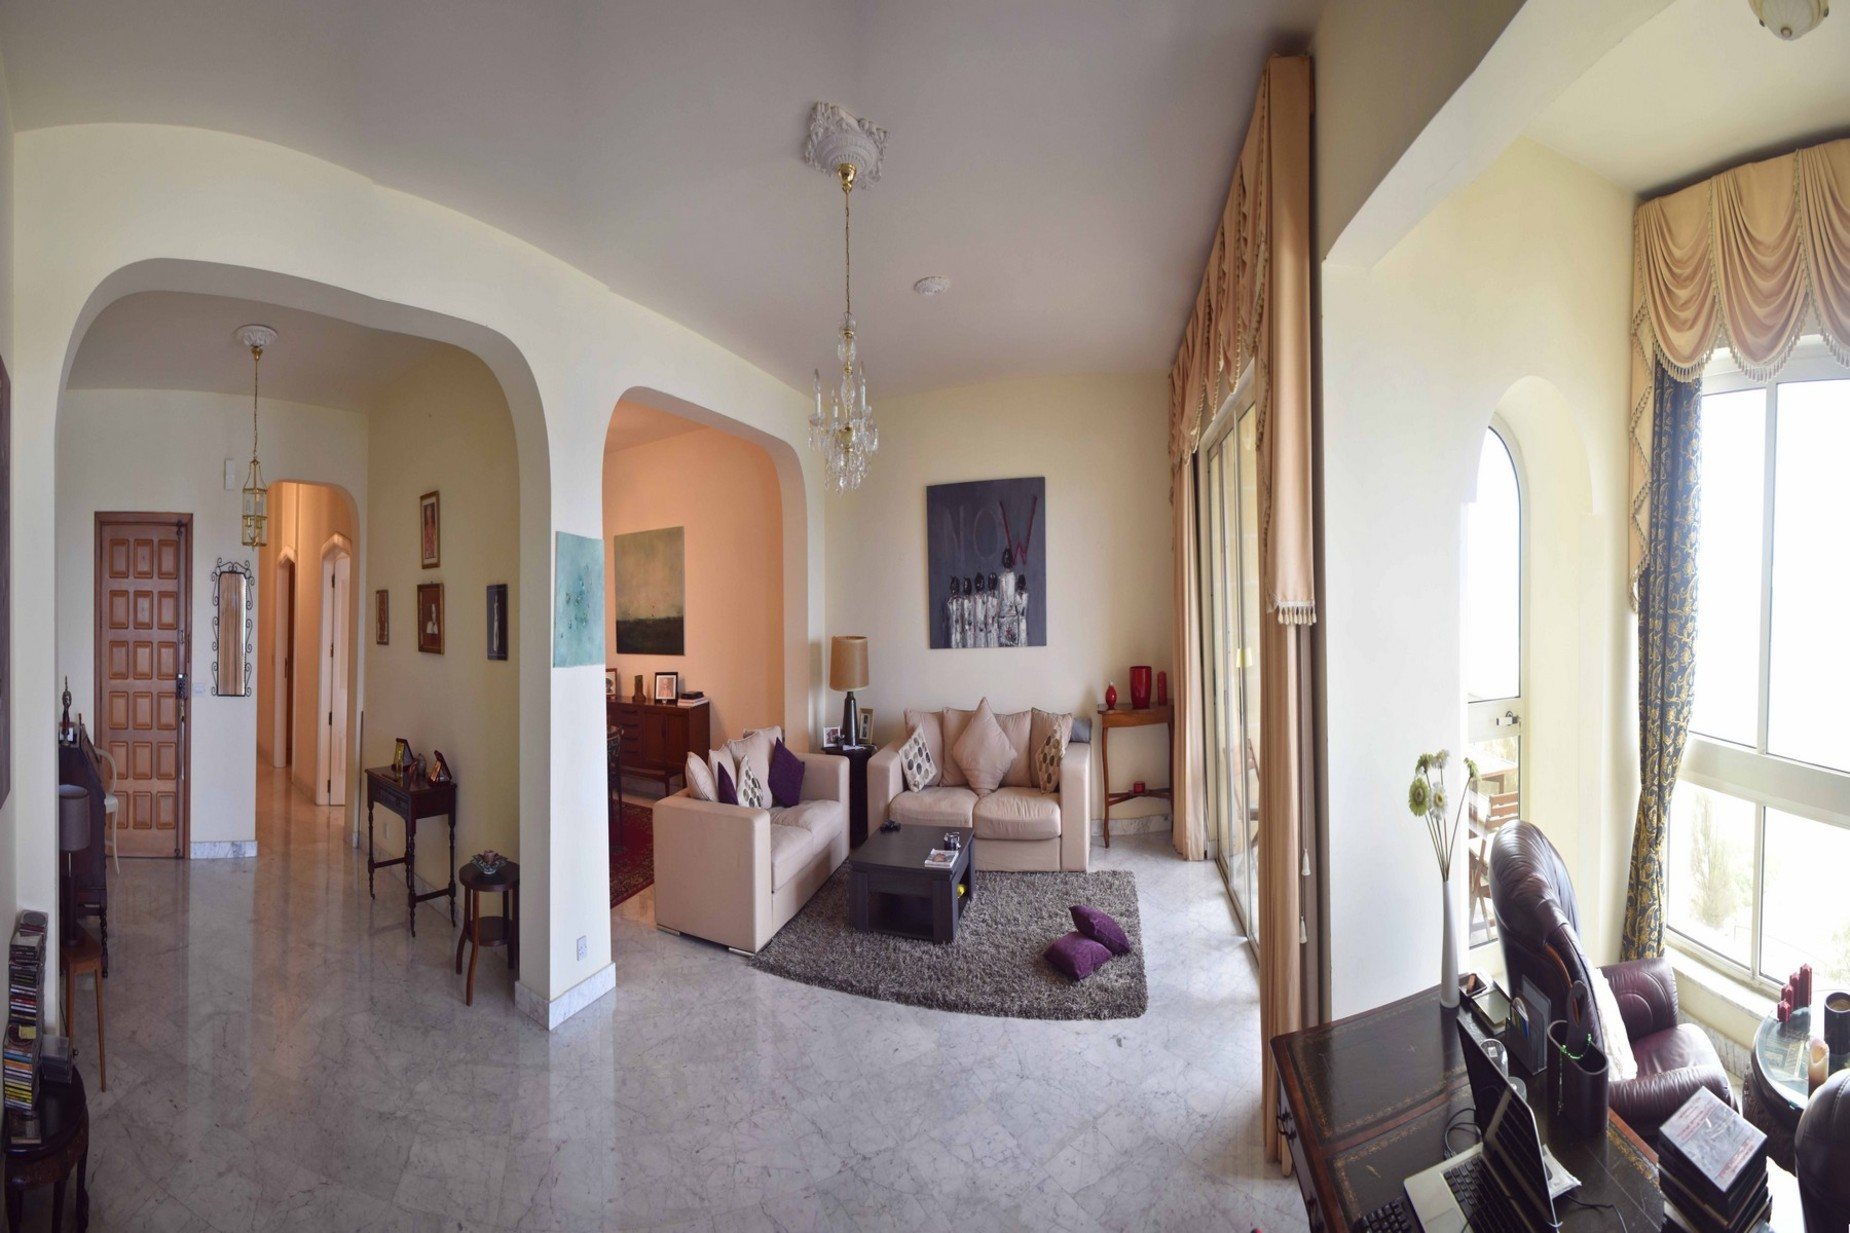 3 bed Apartment For Rent in Sliema, Sliema - thumb 2